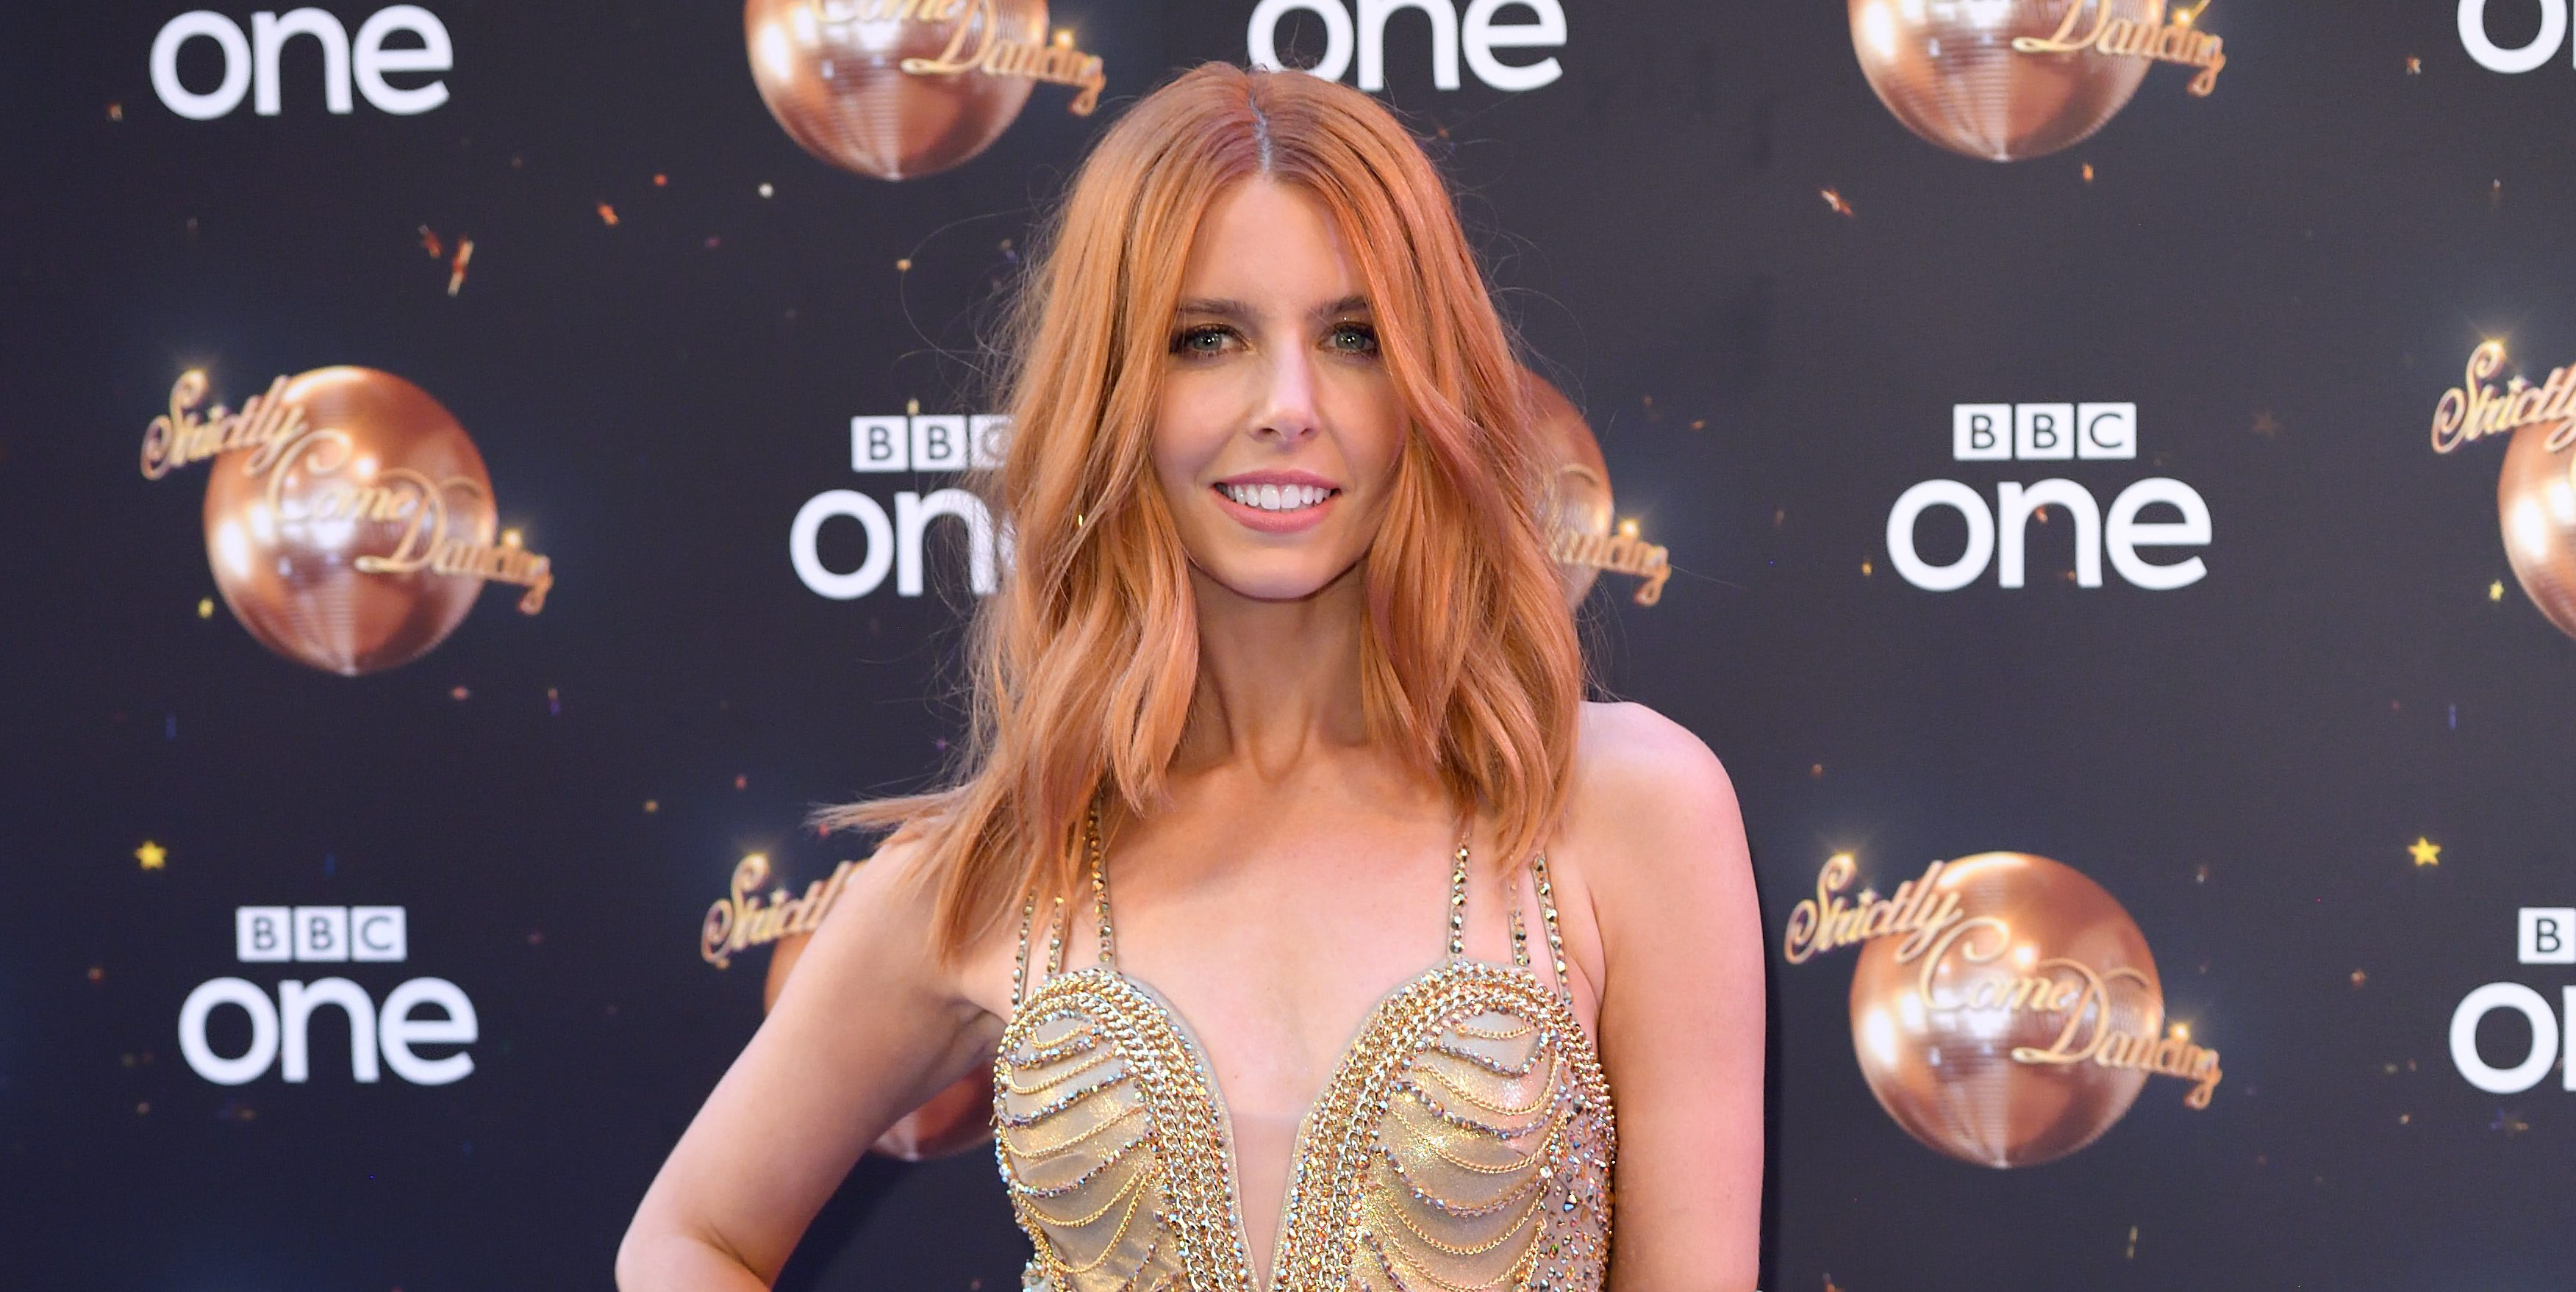 Stacey Dooley says she is 'just raising awareness' amid white saviour criticism